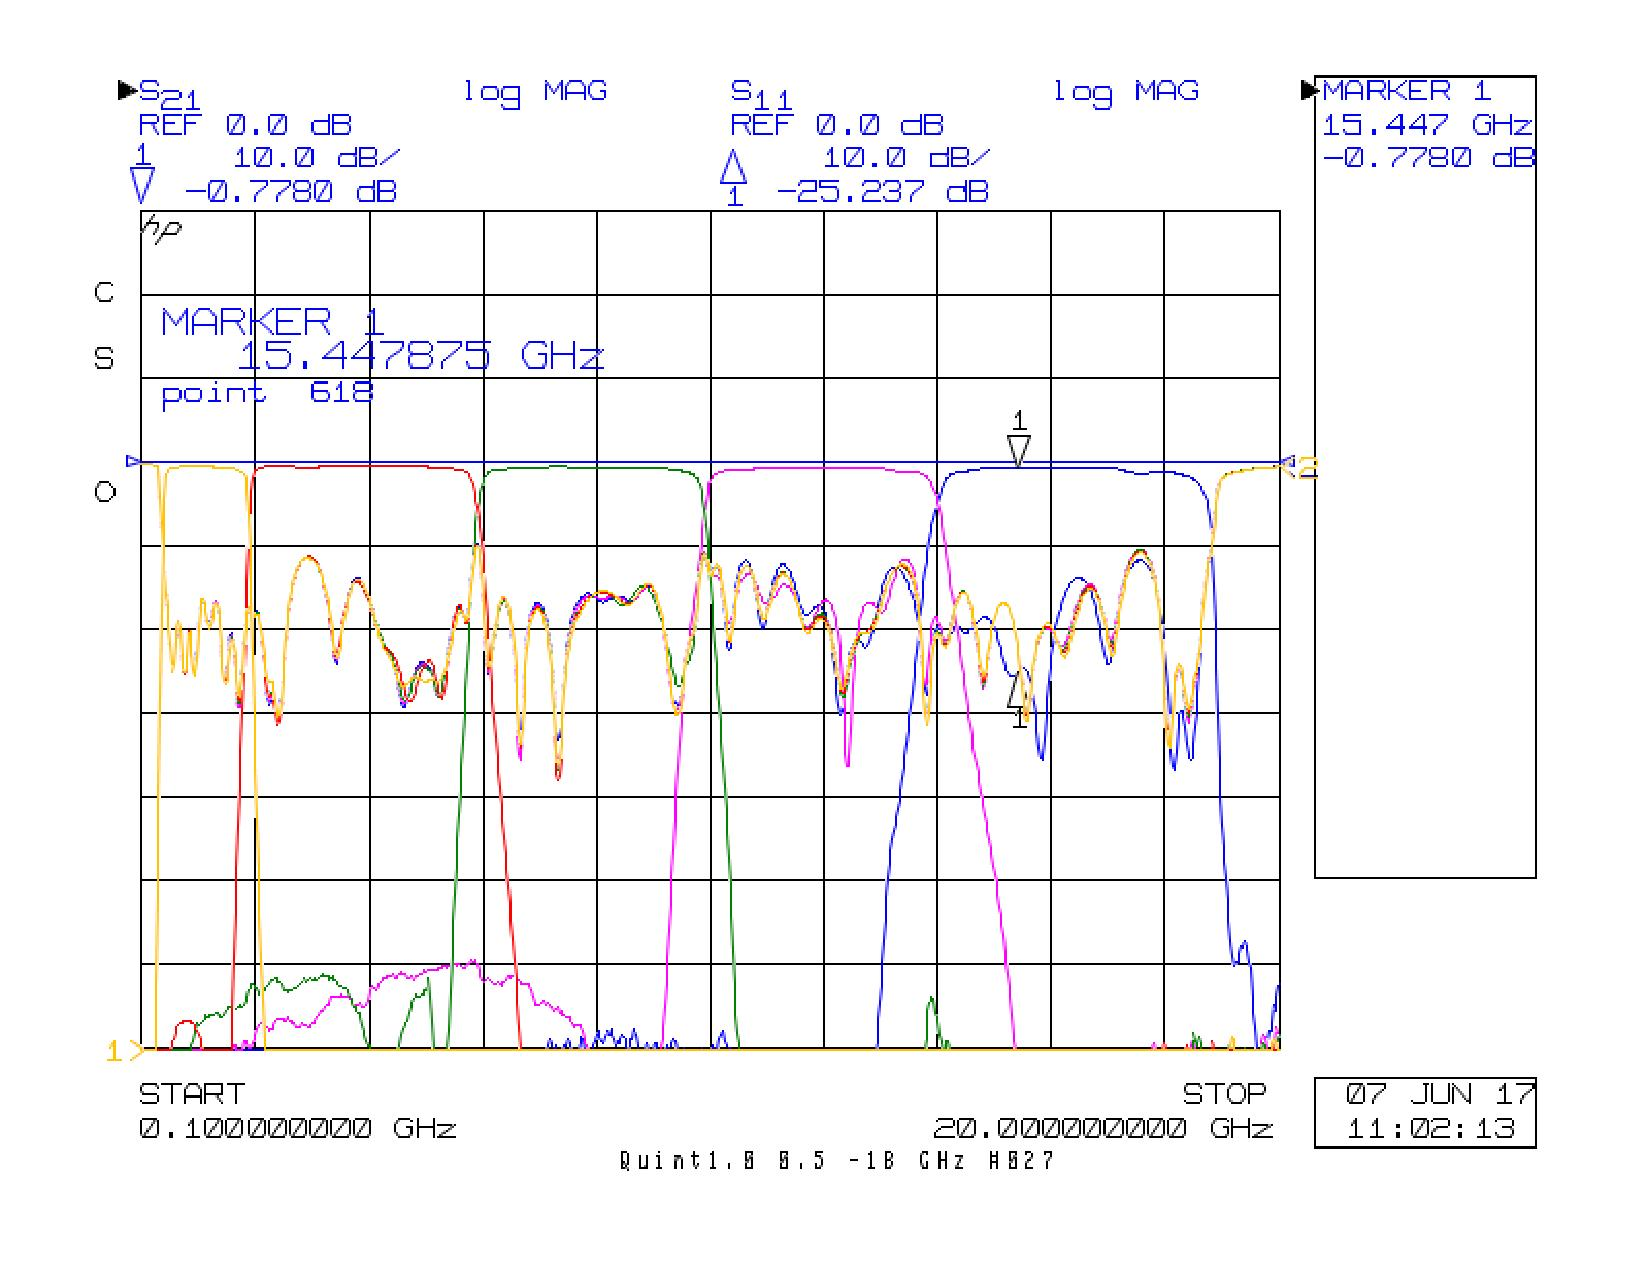 Qunit 10.5 - 18 GHz Plot